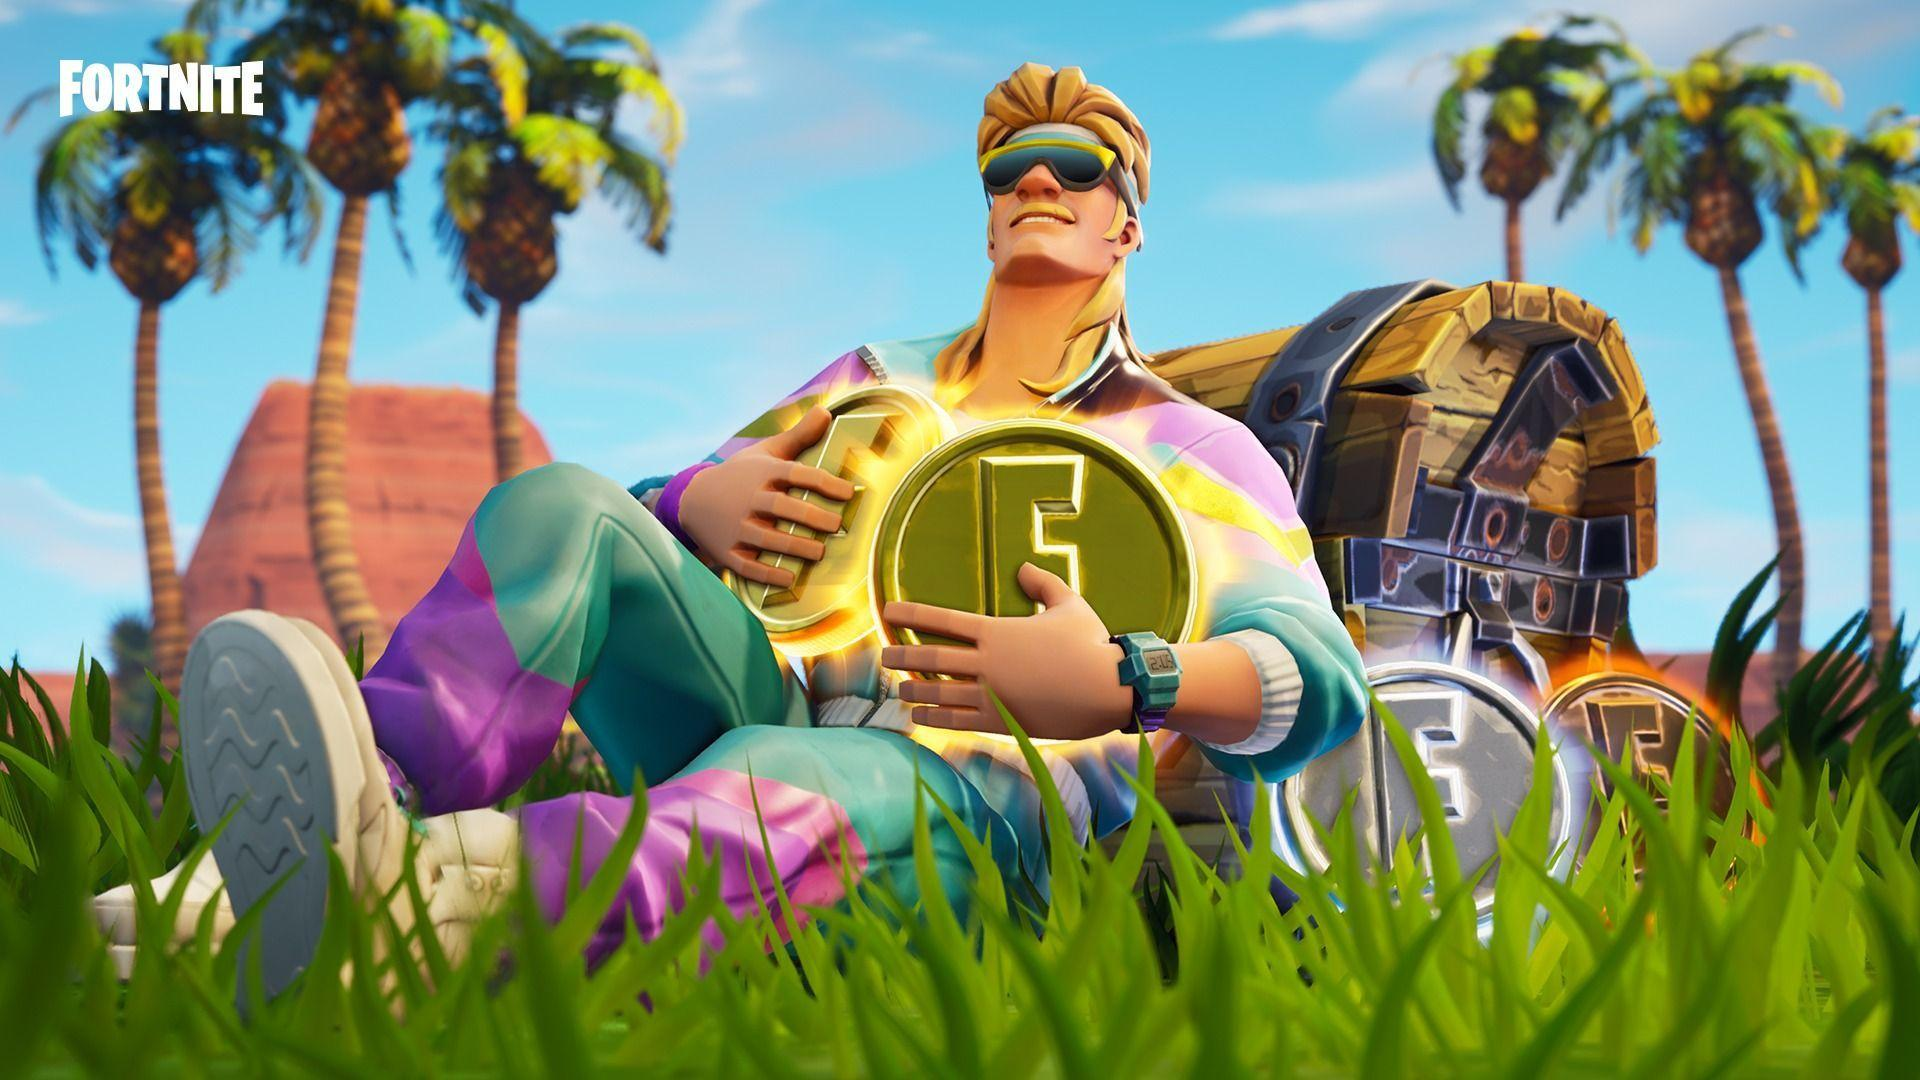 Fortnite 5.30 Patch Brings Portable Rifts, New Score Mode | Android ...